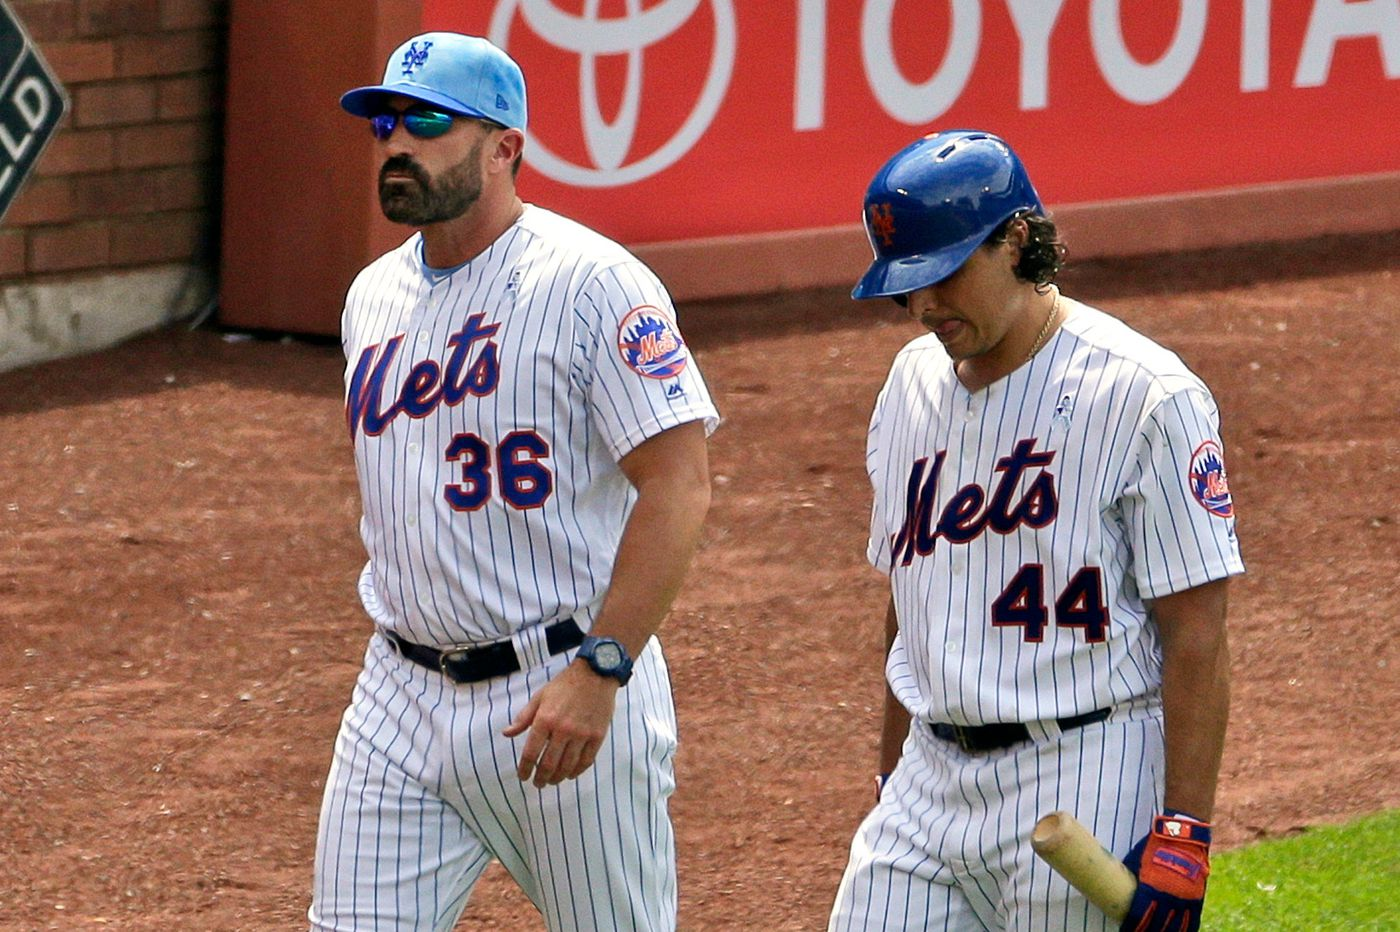 Mets come to Philly after trying to fight a beat writer | Extra Innings